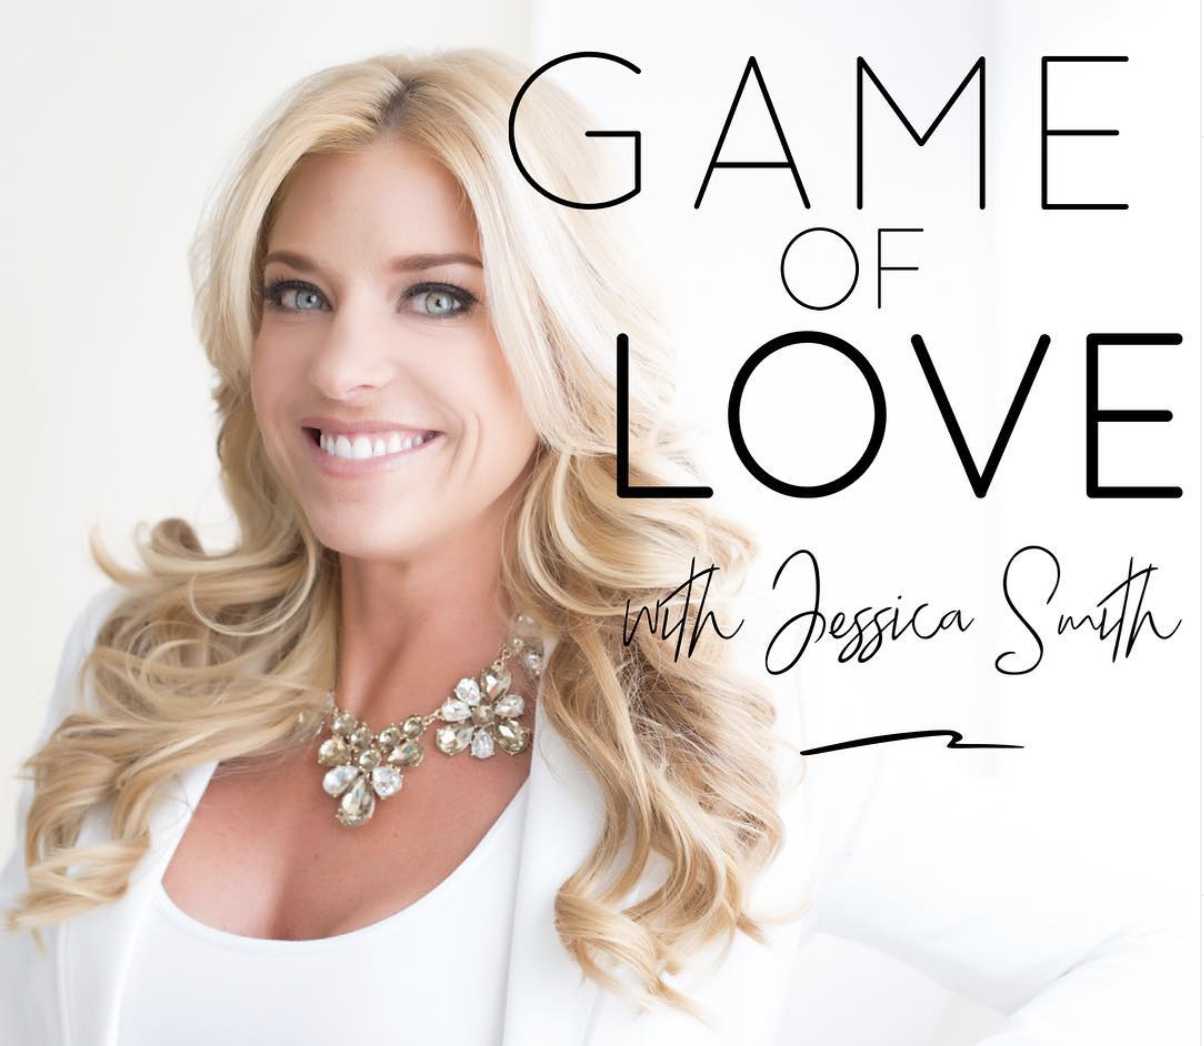 Producer,Game of Love Podcast - Game of Love is a show where all things dating, mating, and love are on the table. !International Dating Coach Jessica Smith uses her unique, powerful coaching skills to help you level up in the world of dating.